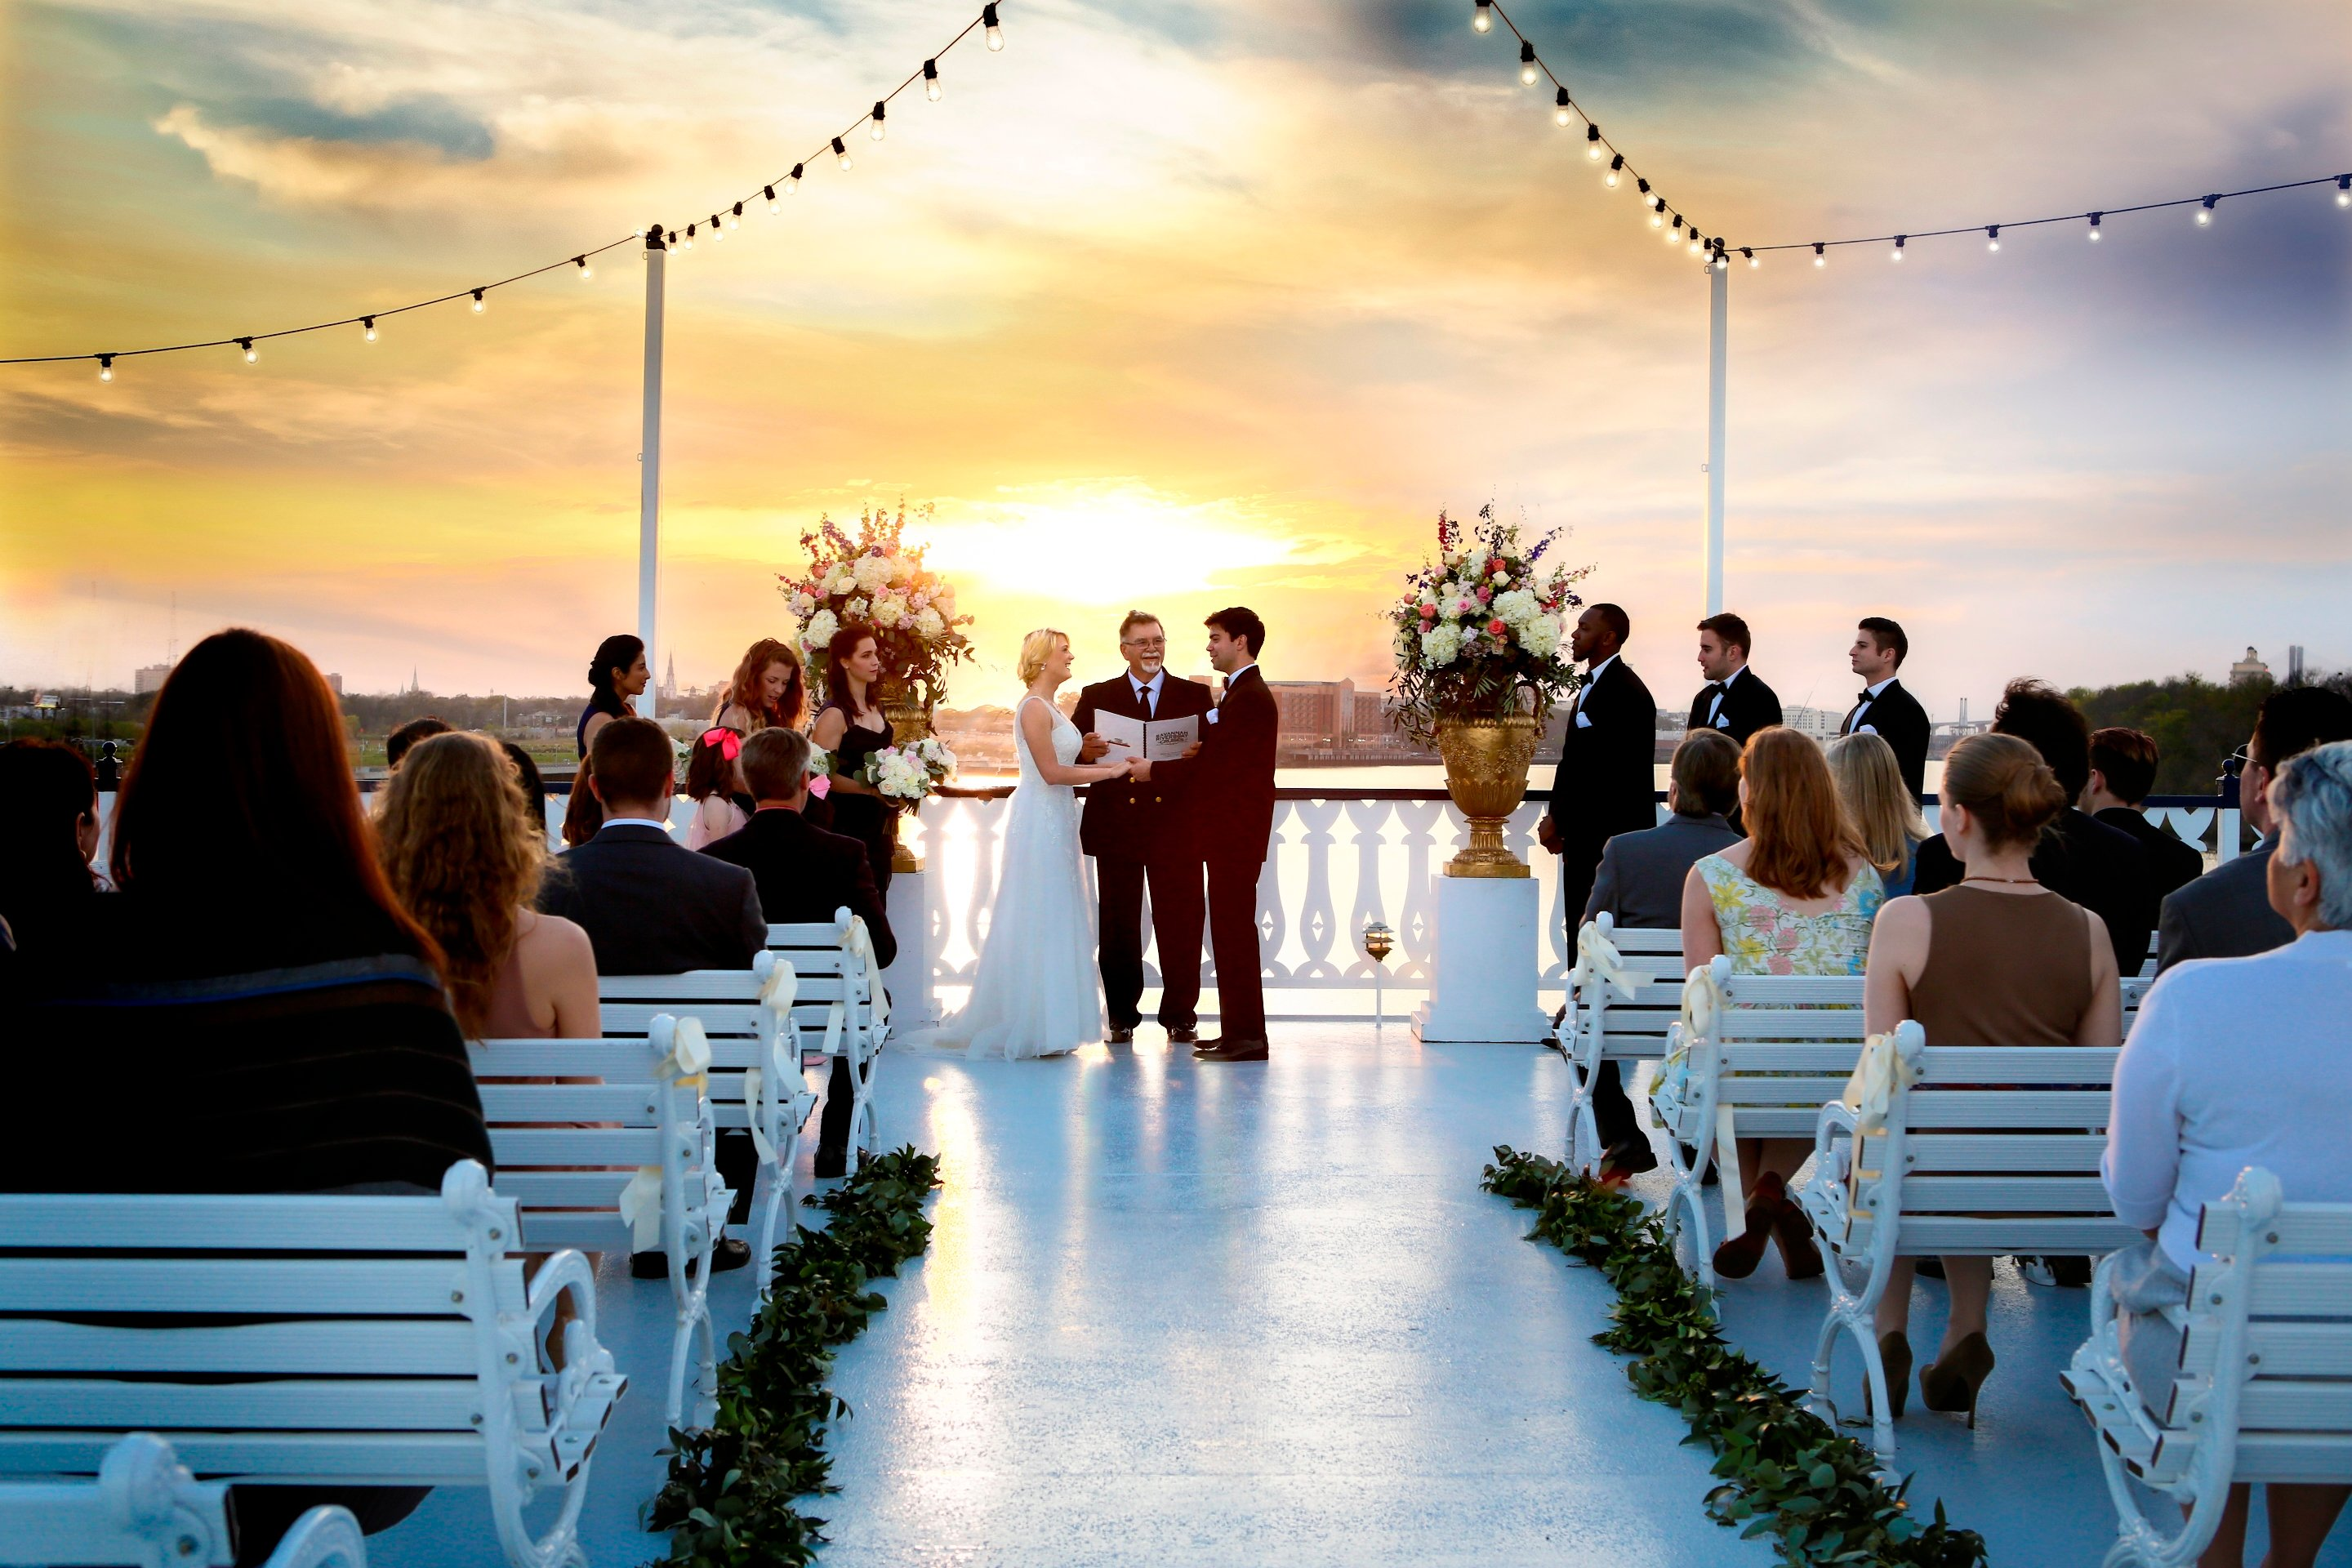 Enchanting top-deck wedding ceremonies.